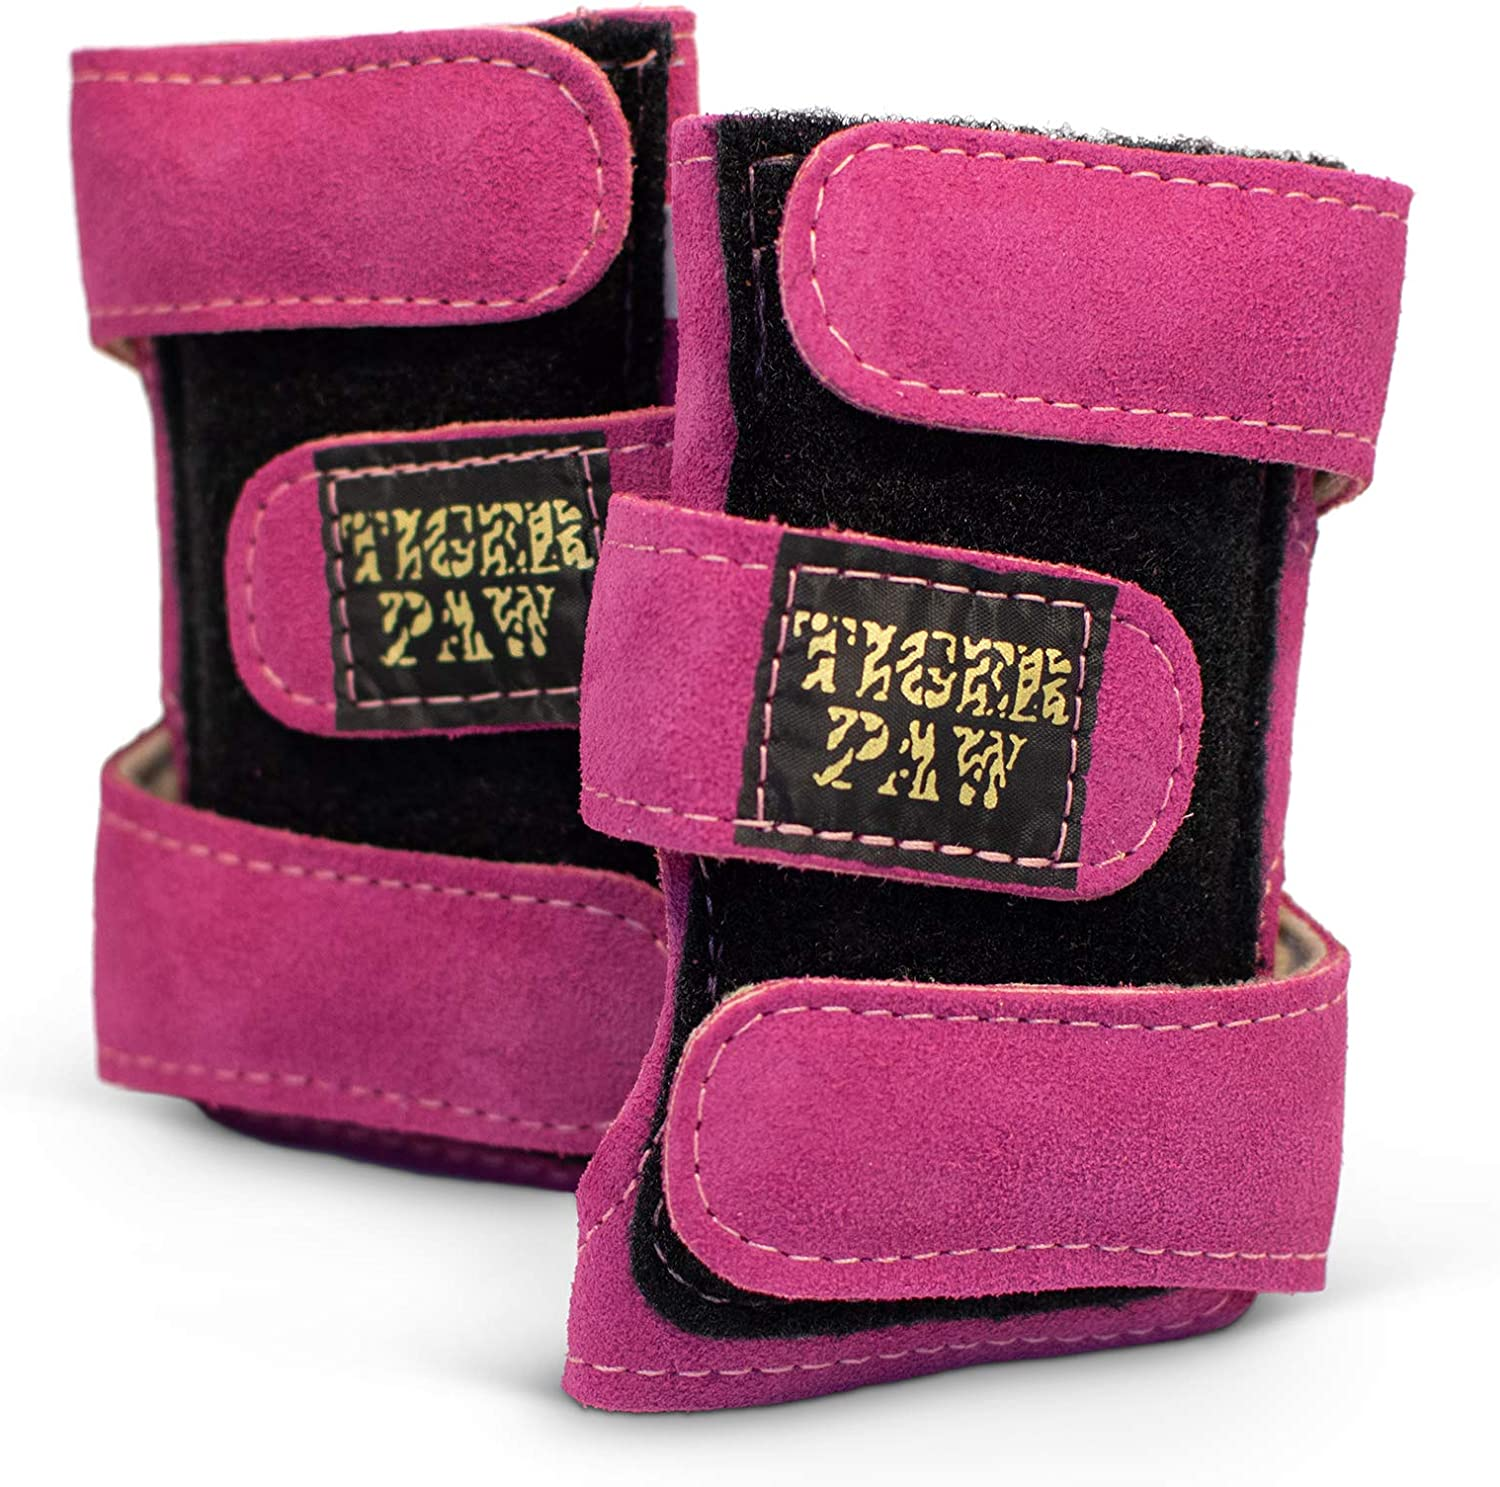 Tiger Paw Authentic Our shop Albuquerque Mall most popular Gymnastics Wrist in Pairs Supports Sold